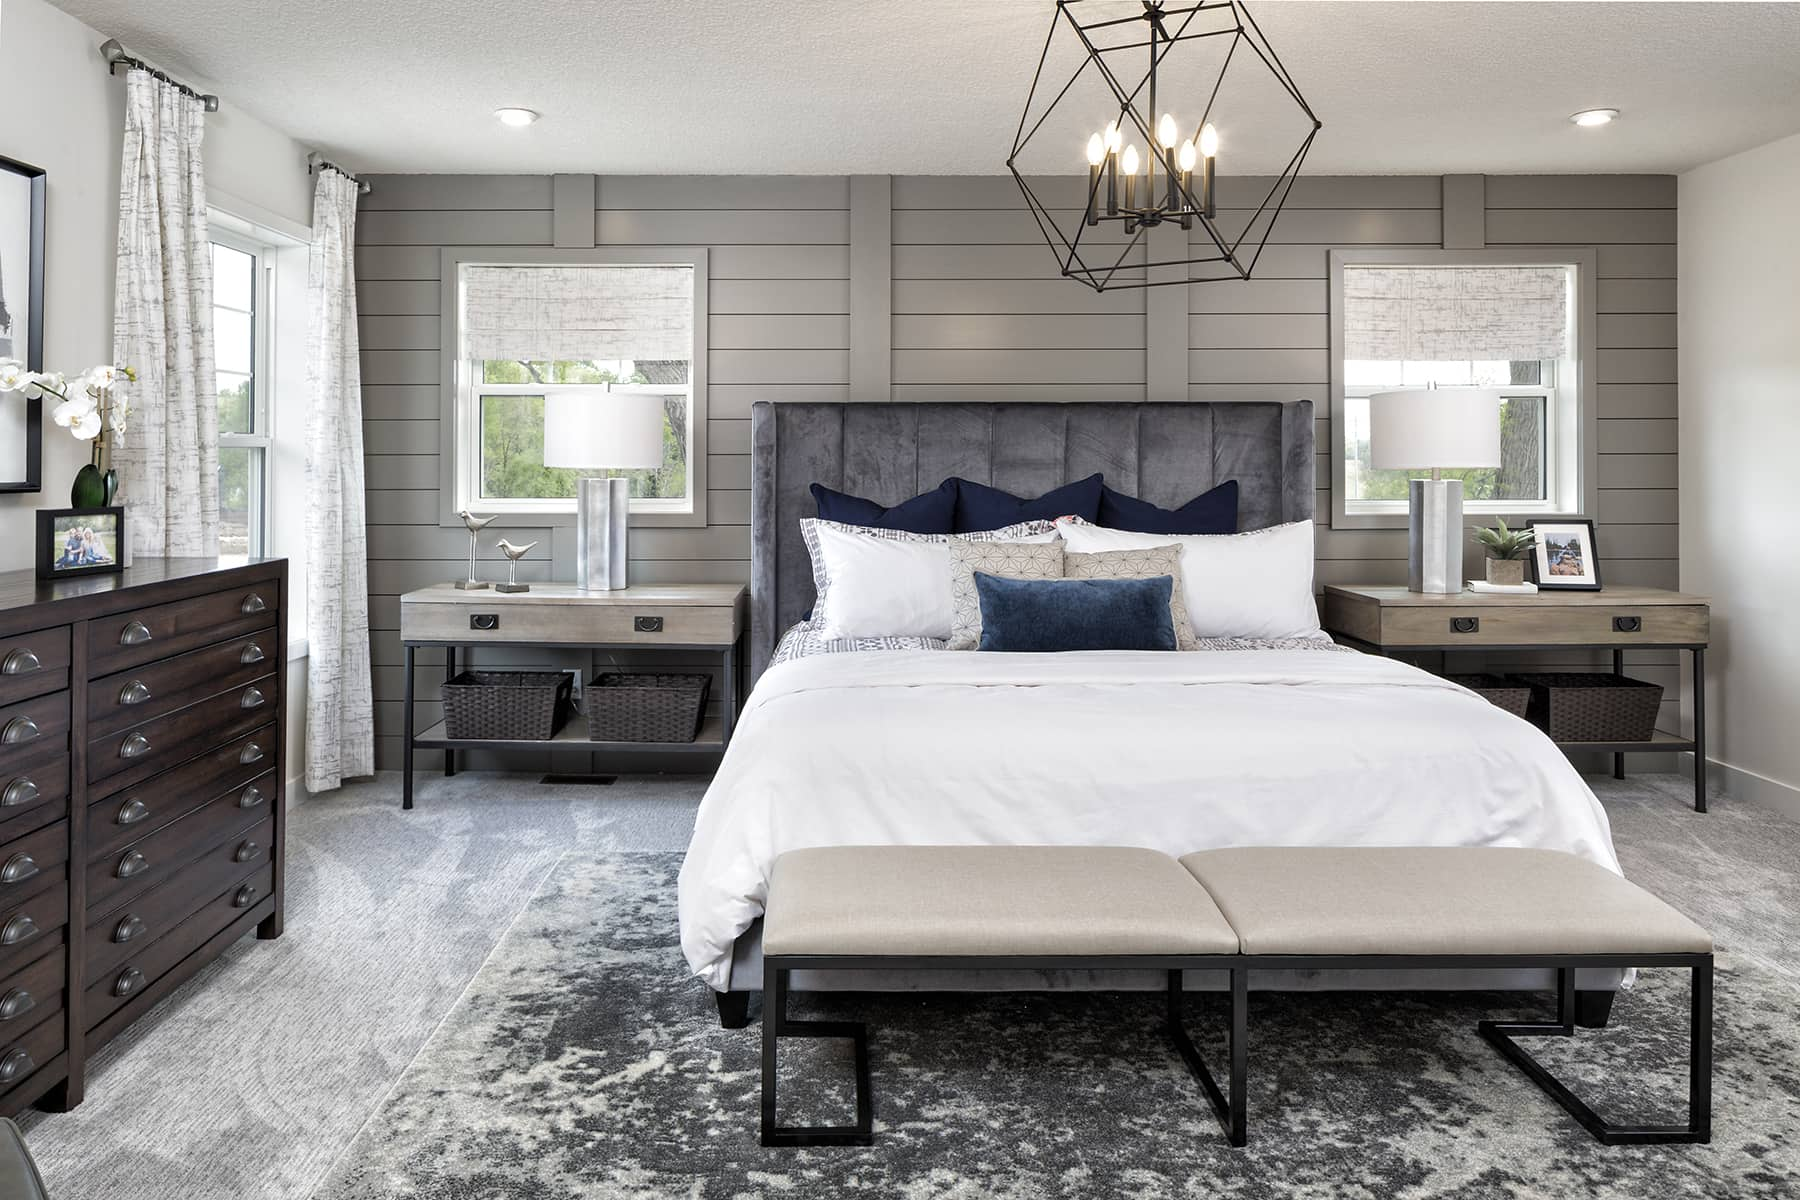 Which Bedroom Style Fits Your Personality Best?